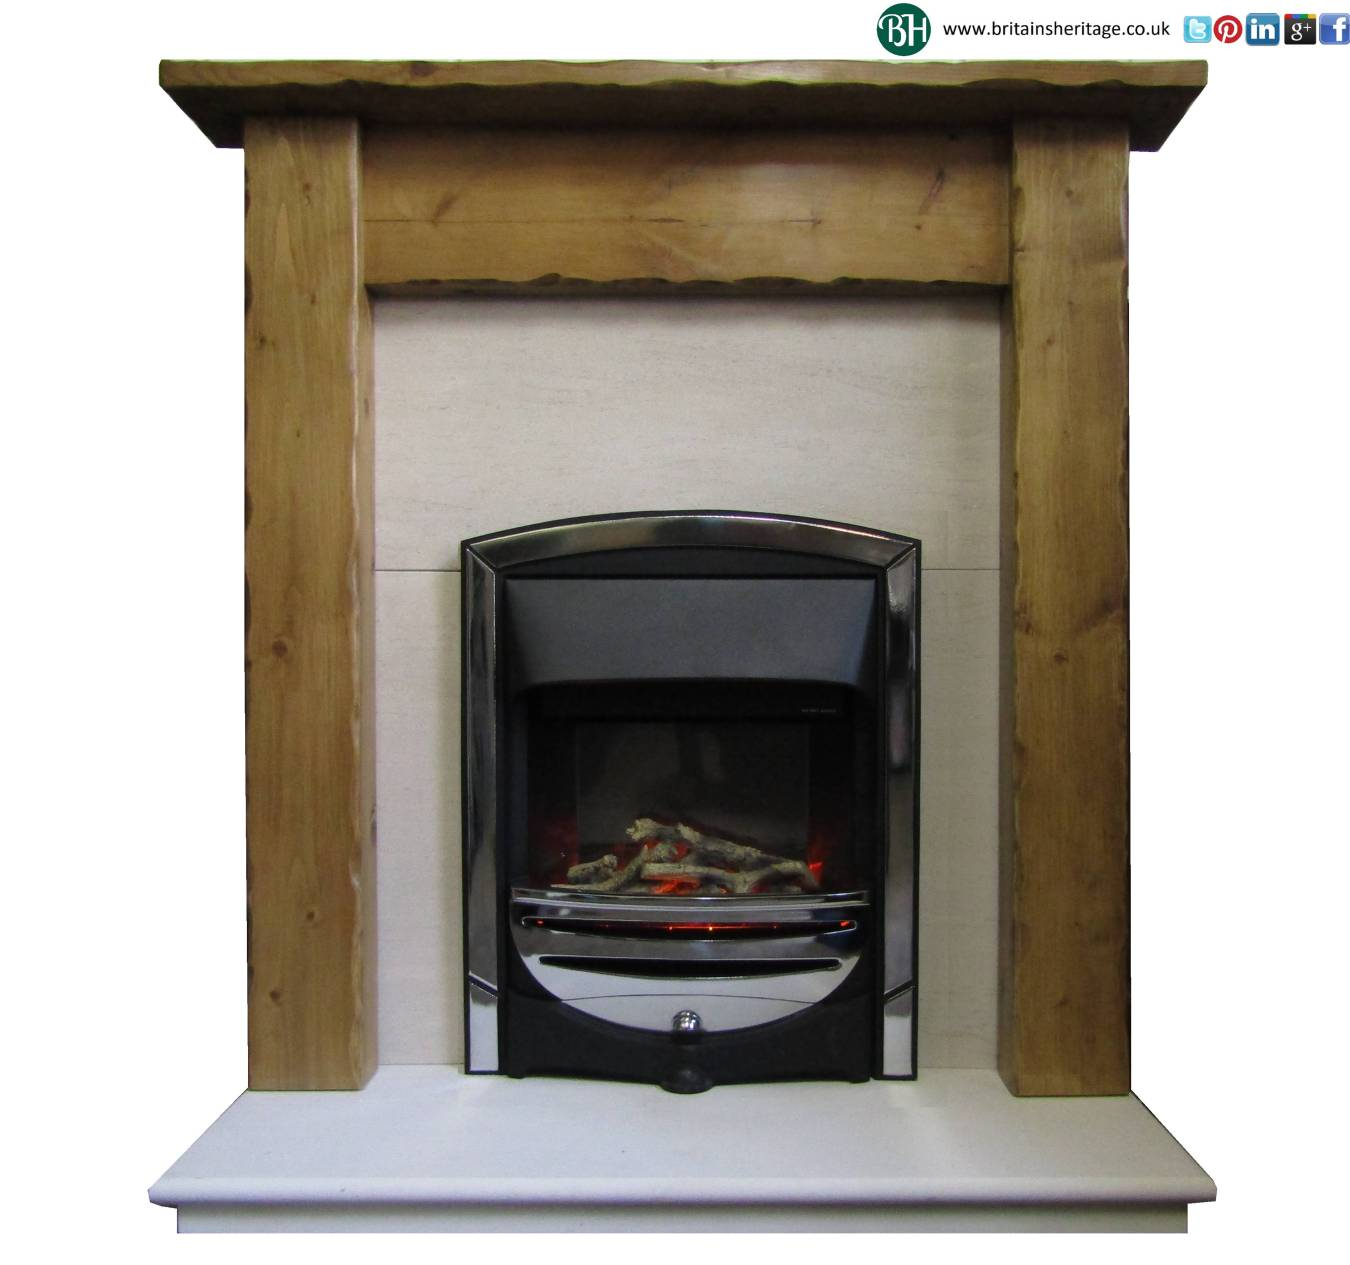 Buy Online Electric Fireplace Suite Offer